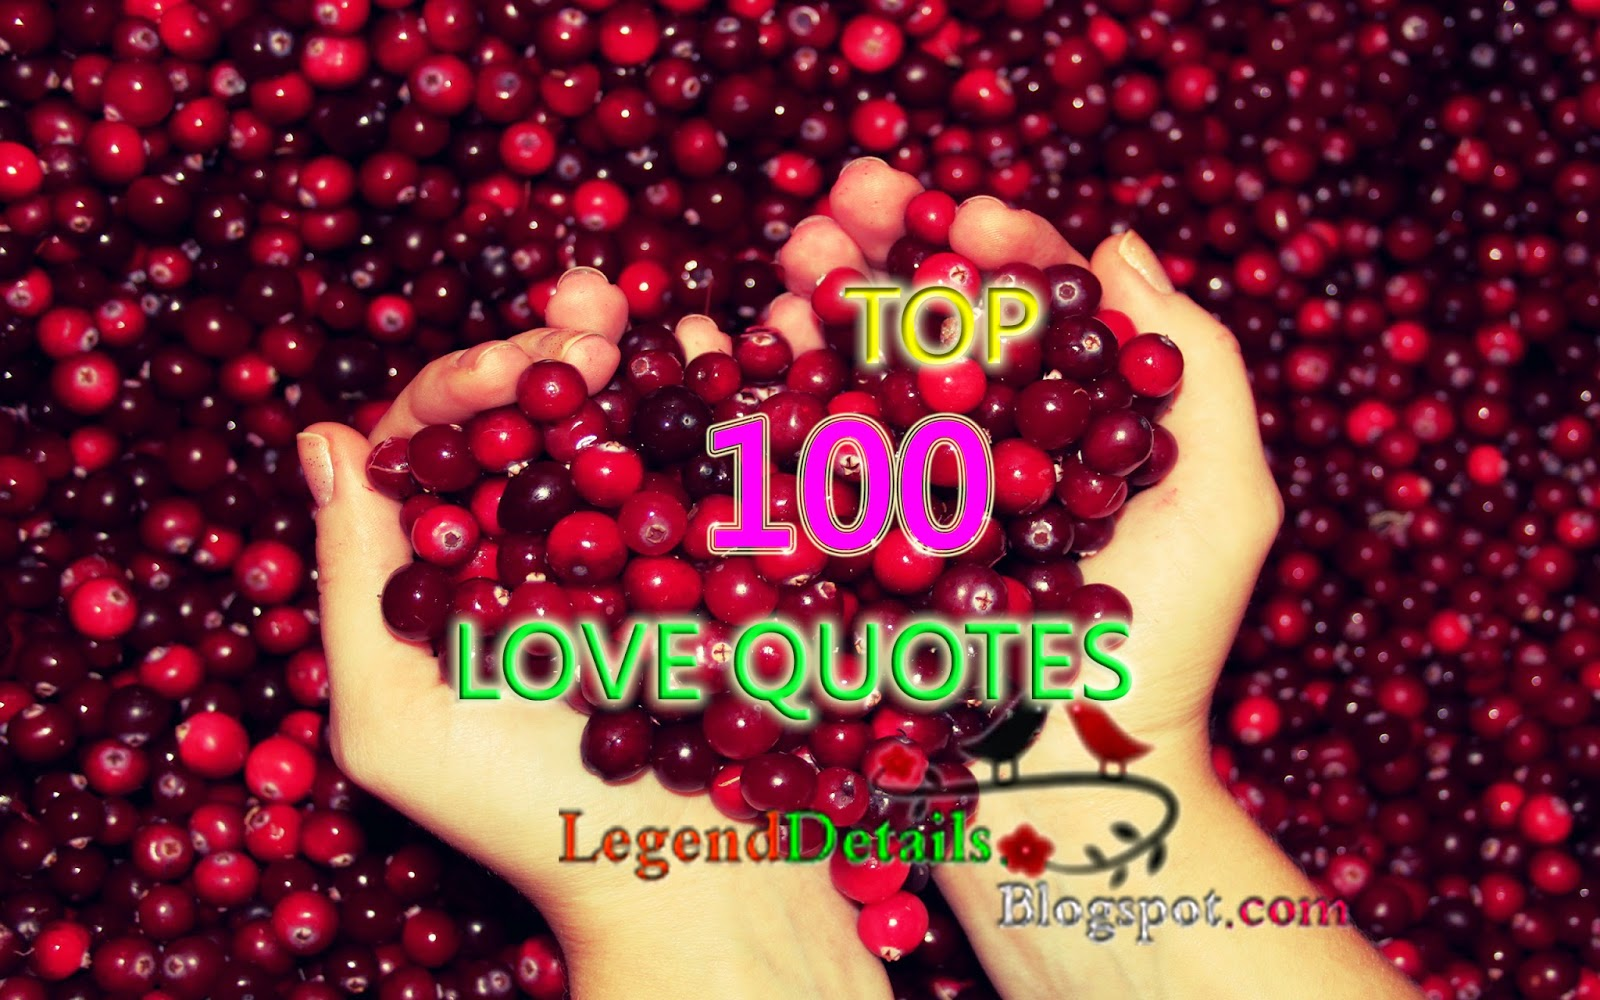 Best Love Quotes In Hindi Of All Time : Top 100 Love Quotes World Best Love Quotes and saying Heart ...